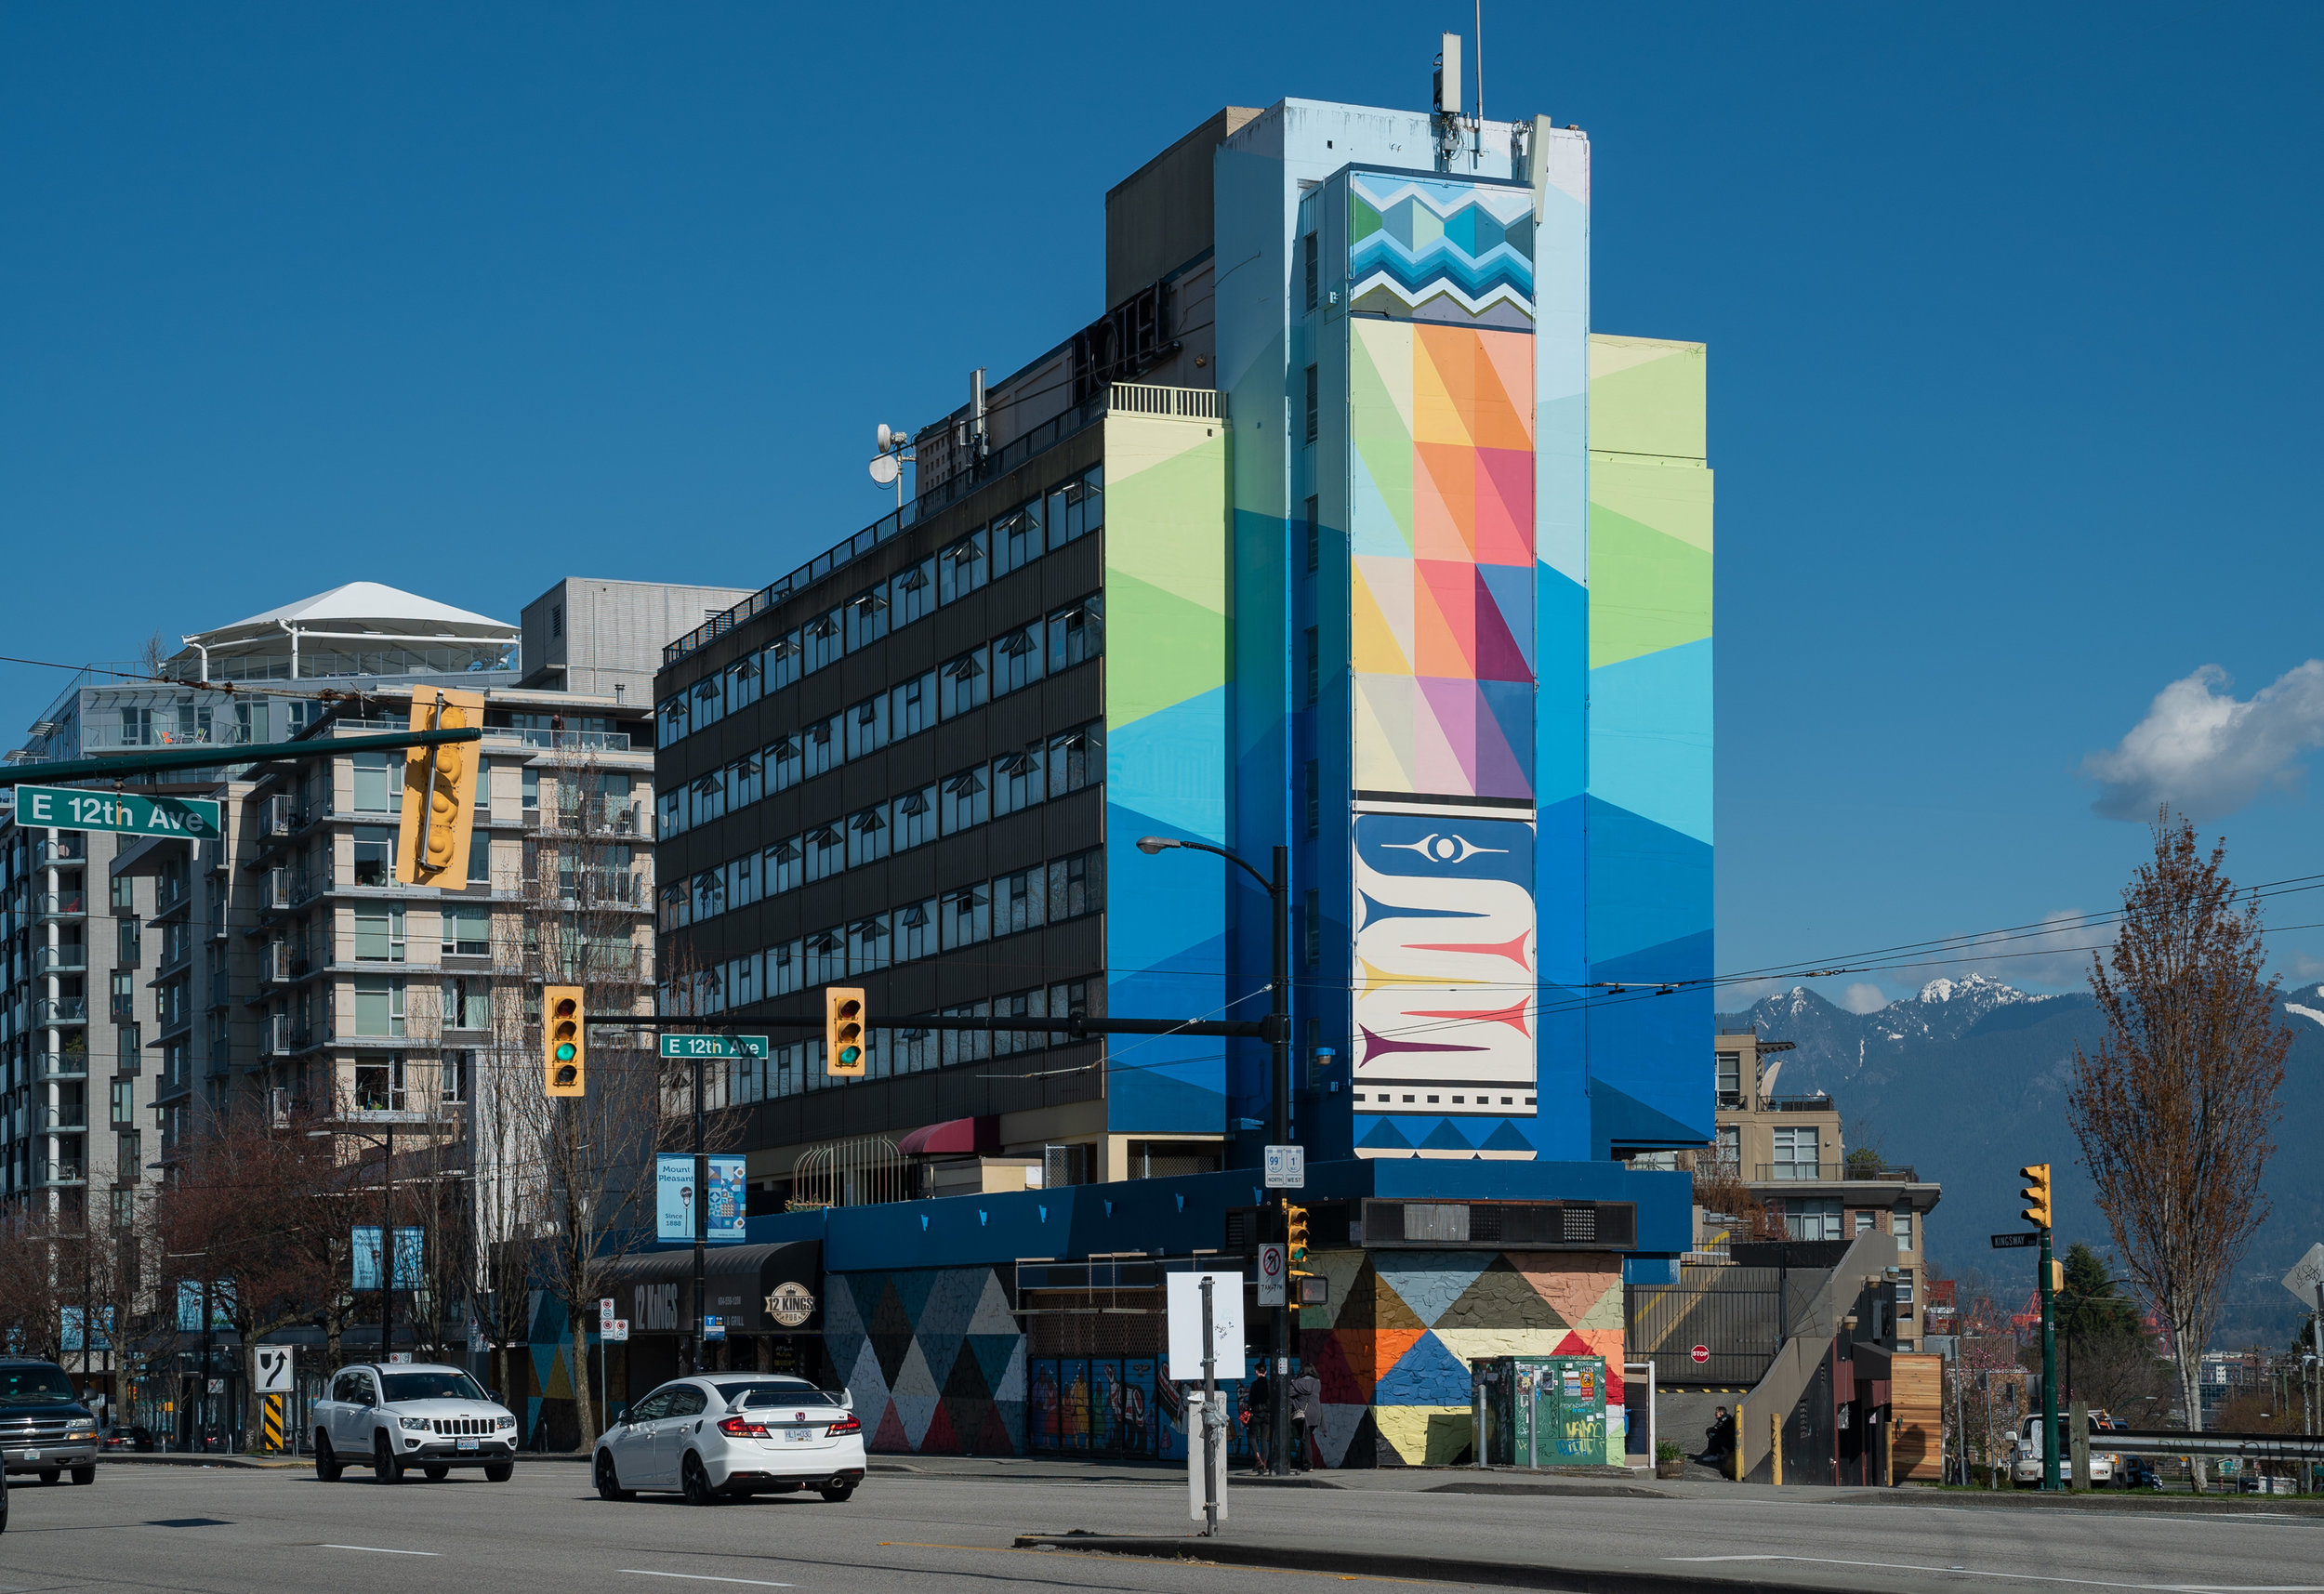 """Above: This mural is the second of three by xʷməθkʷəy̓əm (Musqueam) weaver, graphic designer and artist, Debra Sparrow for the Vancouver Mural Festival as part of the Blanketing The City Series 2018-2019. Location: 12th & Kingsway on the (former) Biltmore Hotel/ (current) Raincity Transitional Housing Program.    JUNE 21ST IS NATIONAL INDIGENOUS PEOPLES DAY   Make sure to grab a friend and get out to some of the amazing events happening tomorrow!  Below are a few highlights and recommendations from our team.    TROUT LAKE PARK INDIGENOUS PEOPLES DAY   This FREE family friendly event takes place Trout Lake on June 21st from noon - 5pm.  Enjoy a day in the sun with all day entertainment, activities, food and fun brought to you by the community.  Find more information in this  Daily Hive article.     ABORIGINAL FRIENDSHIP CENTRE IN SURREY   A FREE family friendly celebration and wellness event at Holland Park on June 21st from 3pm - 8pm.  Expect to be fully immersed in traditional games, crafts, activities, performances, and food!  Visit their  calendar of events  for more details!    BILL REID GALLERY   Enjoy FREE ADMISSION to the Bill Reid Gallery of Northwest Coast Art on June 21st from 10:00 am to 5:00 pm. The current exhibit, Womxn and Waterways     is curated by the #rematriate collective  .    Find the  Facebook Event here!     DECOLONIZE YOUR THINKING   How does one do this? HINT: It does not happen overnight, there is no course you can take, no quick fix and it's a different process for each person. So, where to begin? We recommend starting (or continuing) your process by following Michelle Lorna Nahanee on   instagram     and diving deep into her freshly published """"  5 THINGS YOU CAN ACTIVELY DO TO SUPPORT INDIGENOUS PEOPLE  """" and then to begin applying everything you can from this list!    VMF's COMMITMENT   Going back to the first year of our festival in 2016, we understood that the Vancouver Mural Festival is held on the traditional unceded lands of the xʷ"""